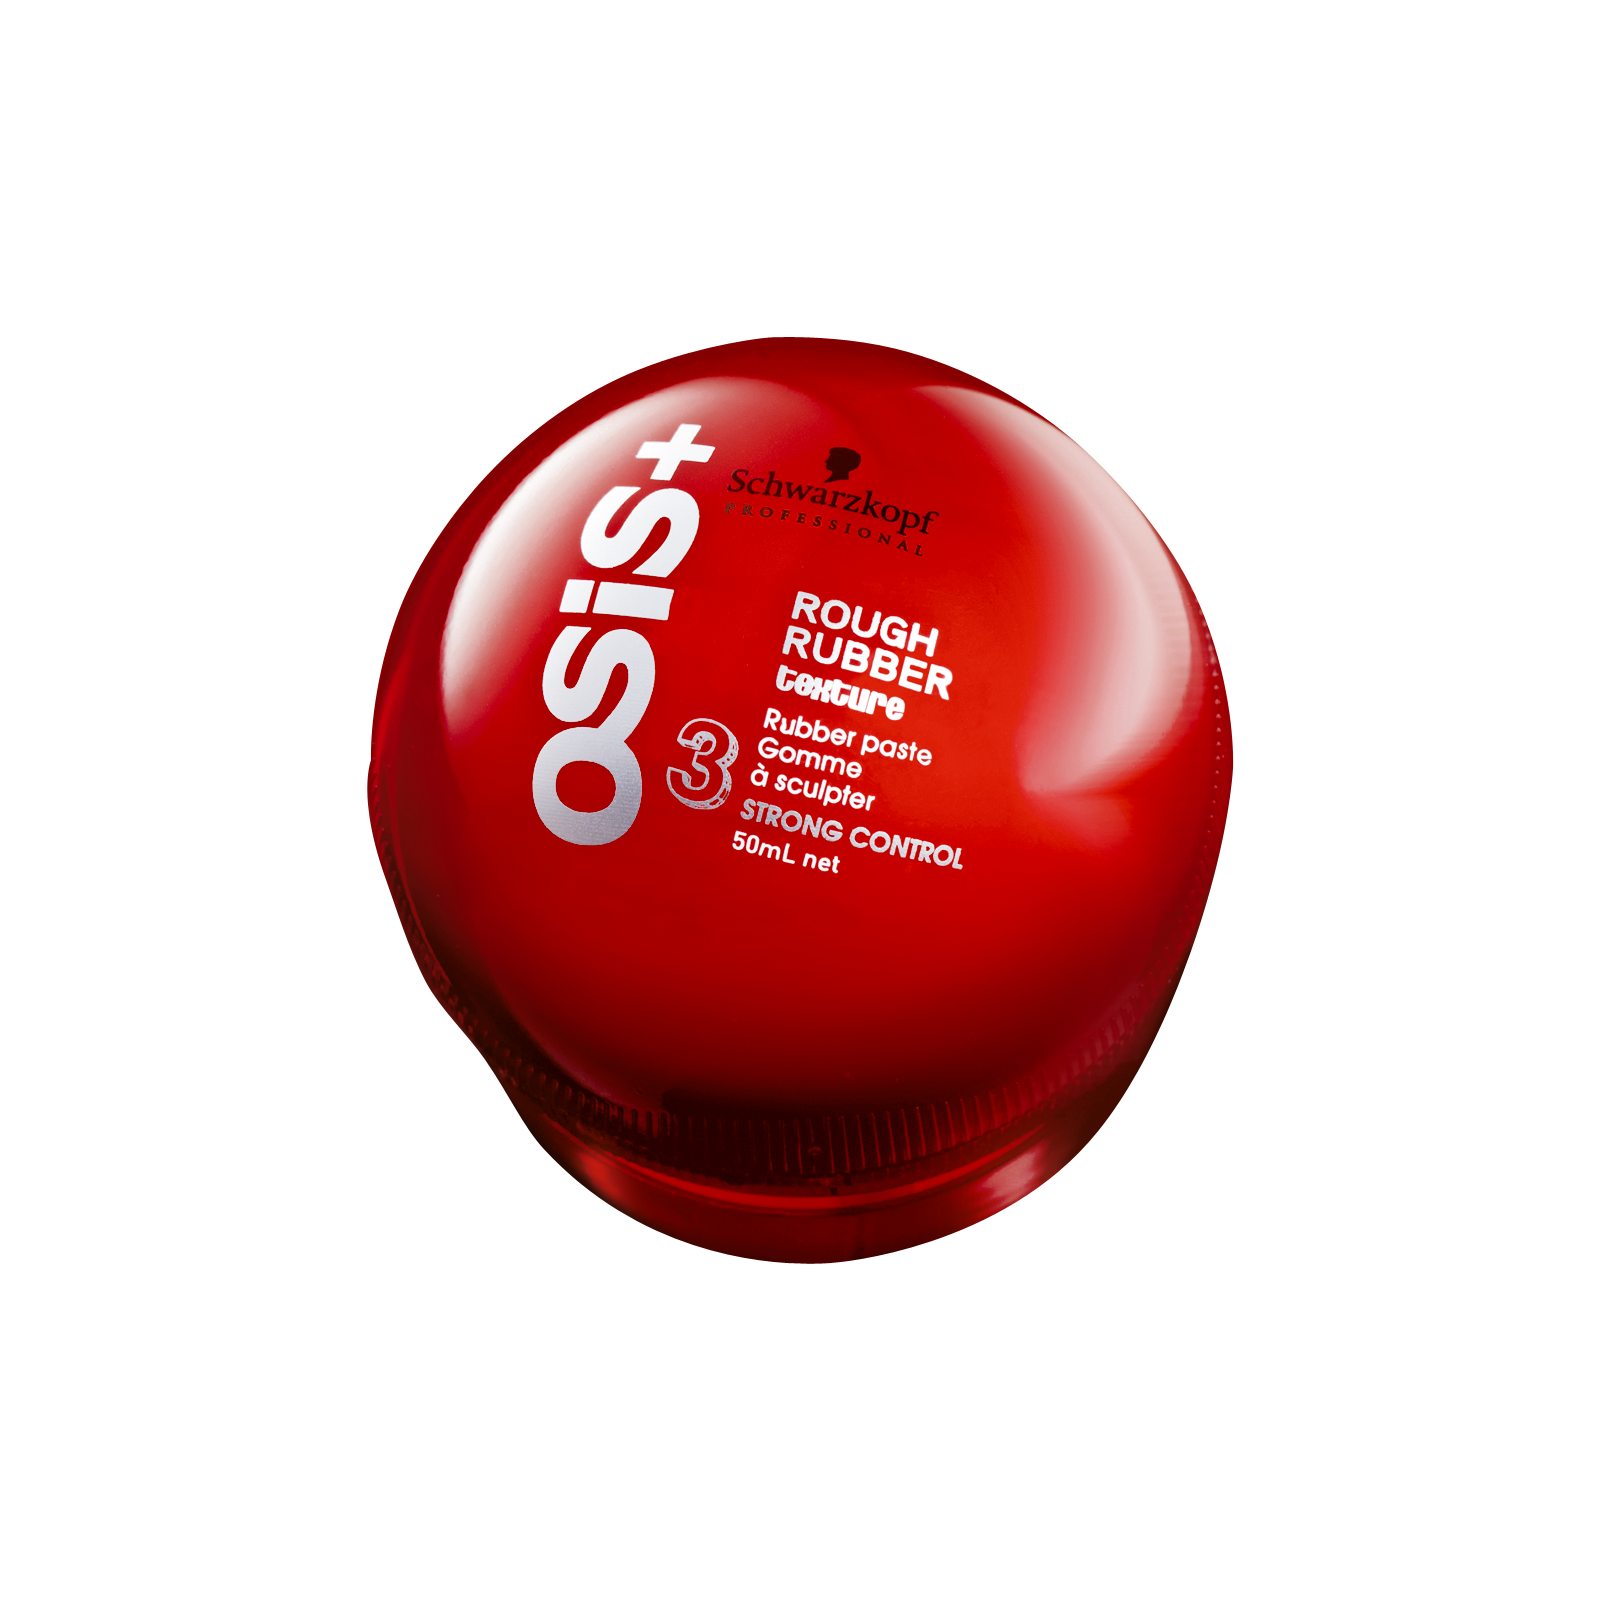 OSIS+ Rough Rubber